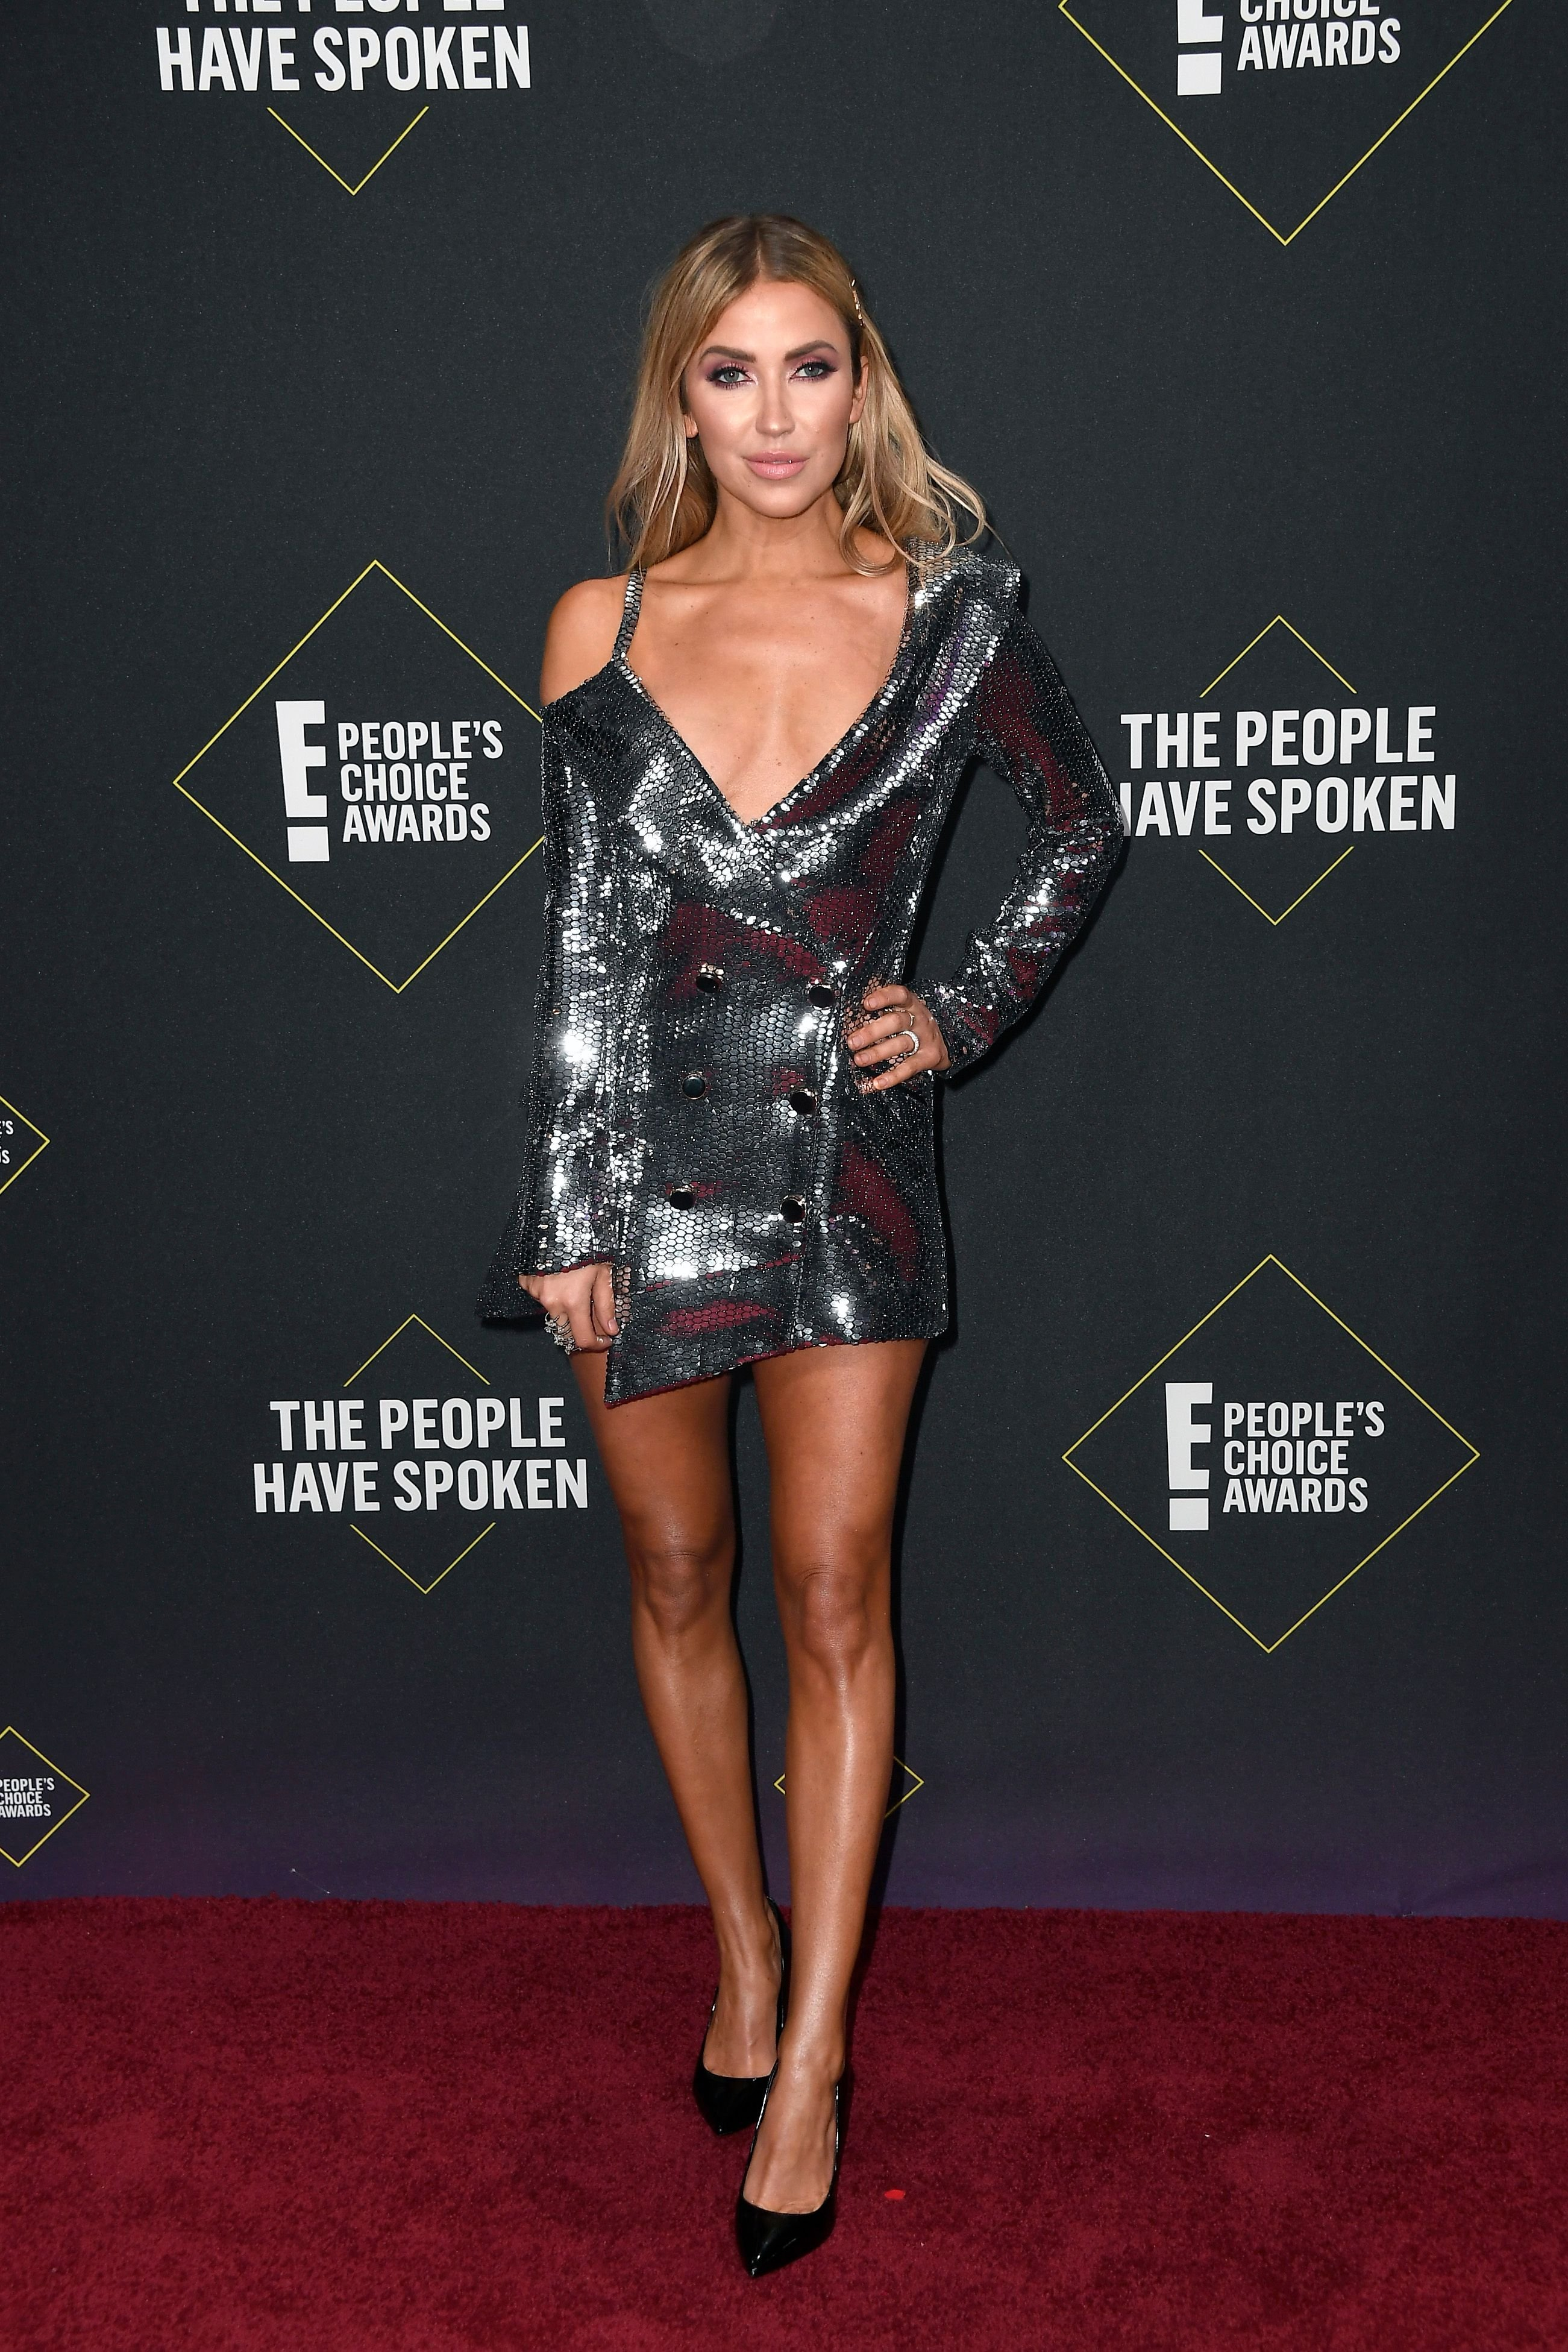 Kaitlyn Bristowe at the 2019 E! People's Choice Awards at Barker Hangar on November 10, 2019 | Photo: Getty Images